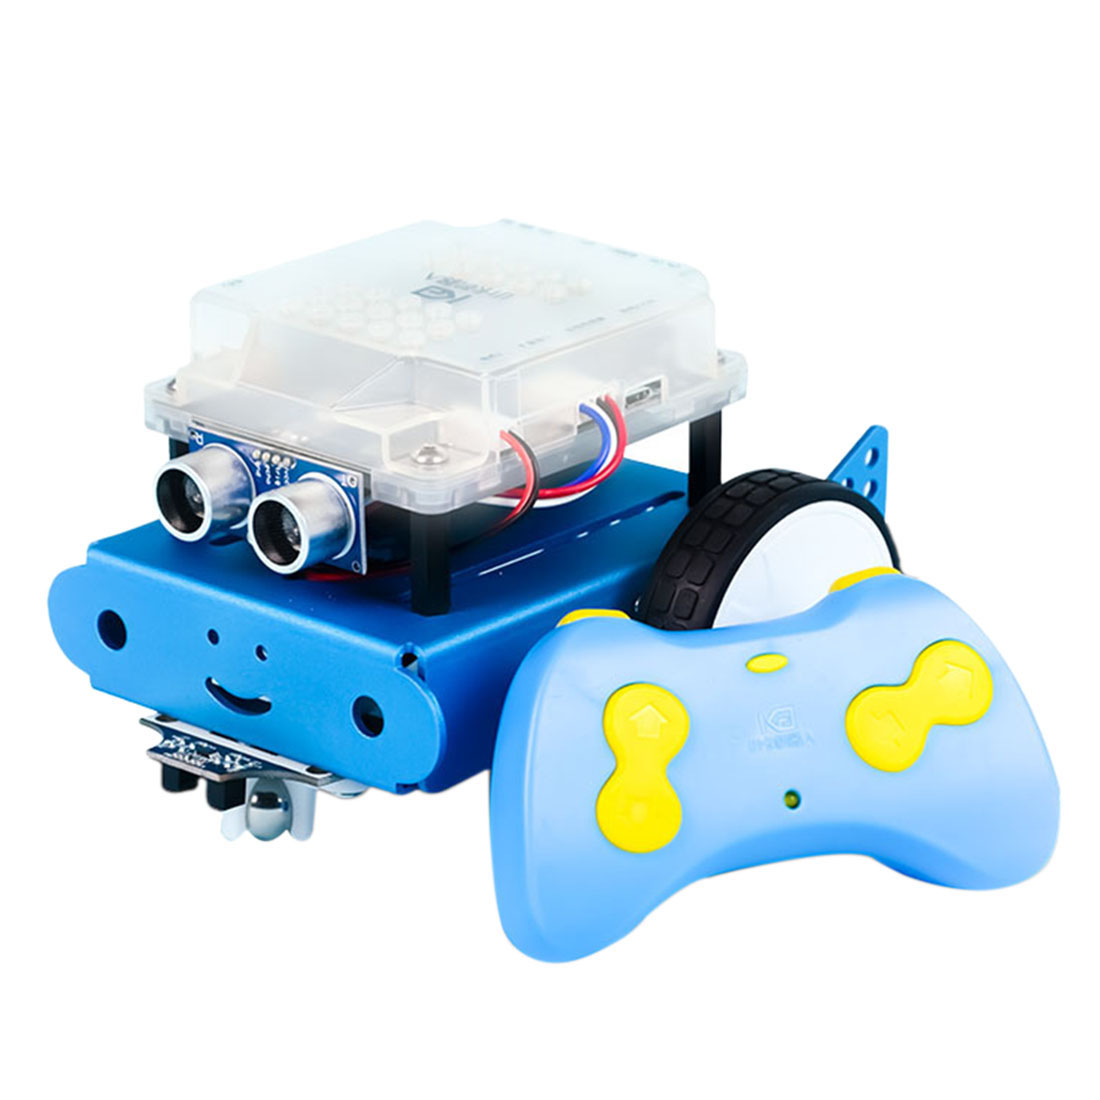 MODIKER DIY High Tech Smart Robot Car Kit APP Control Obstacle Avoidance Line tracking Ultrasonic Sensor Programmable Toys